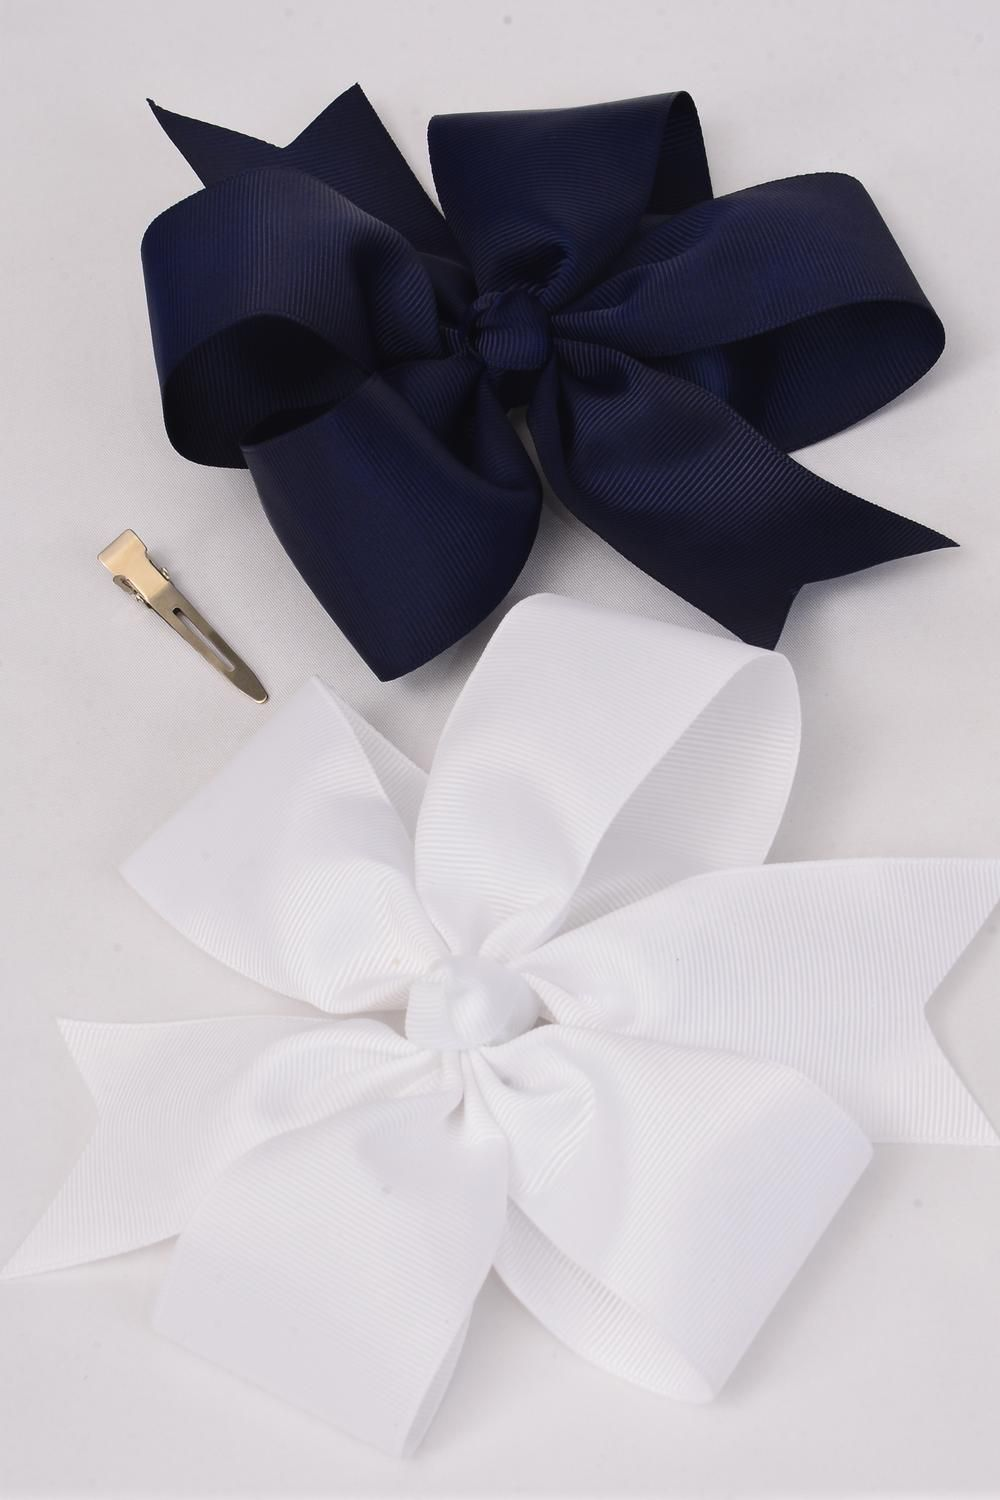 "Hair Bow Jumbo Navy & White Mix Alligator Clip Grosgrain Bow-tie/DZ **Navy & White Mix** Alligator Clip,Size-6.5""x 6.5"" Wide,6 of each Color ASst,Clip Strip & UPC Code"